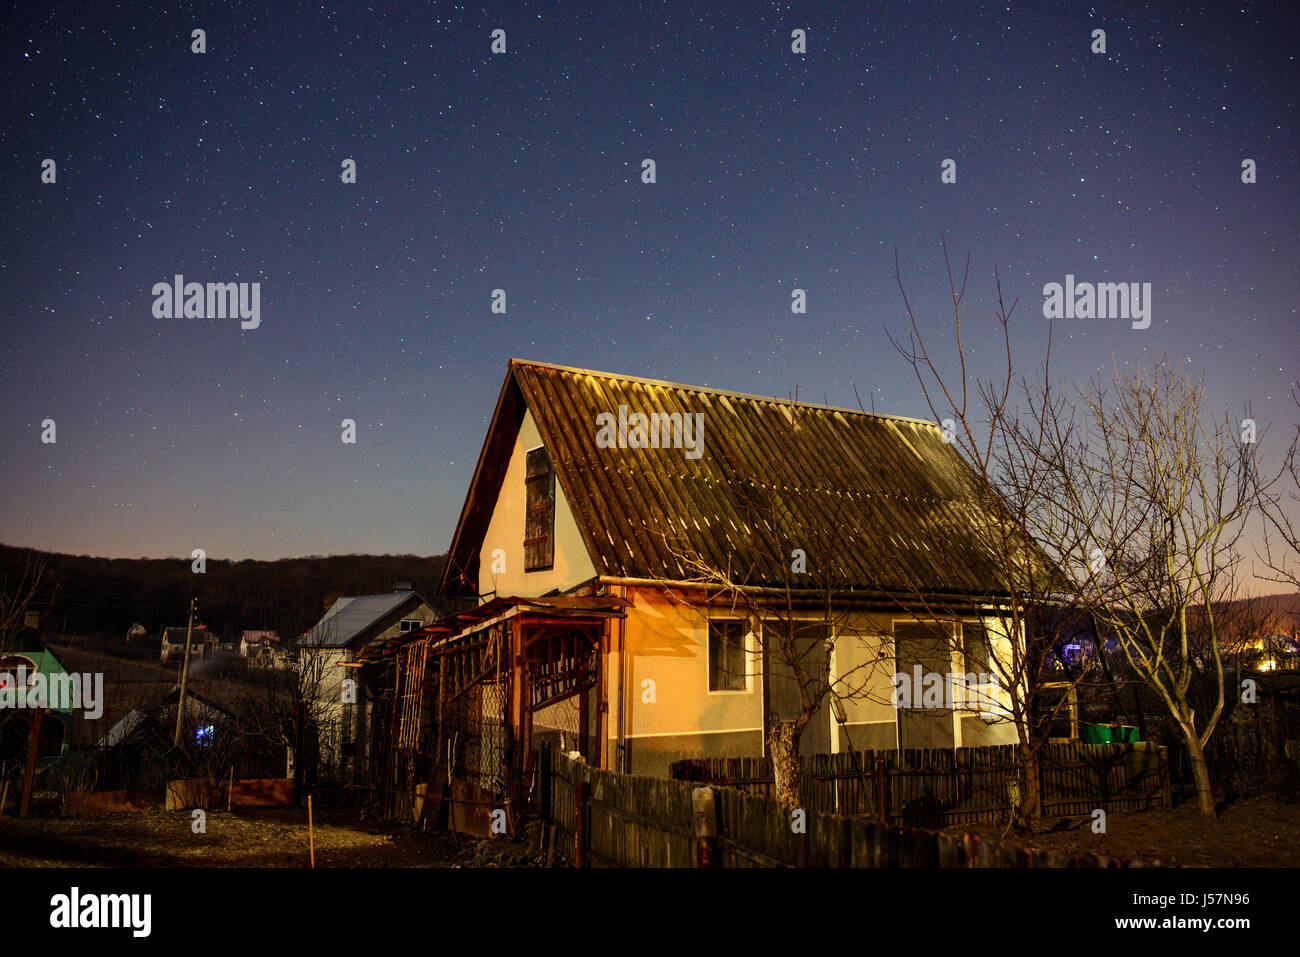 wooden house on a background of the night sky. - Stock Image